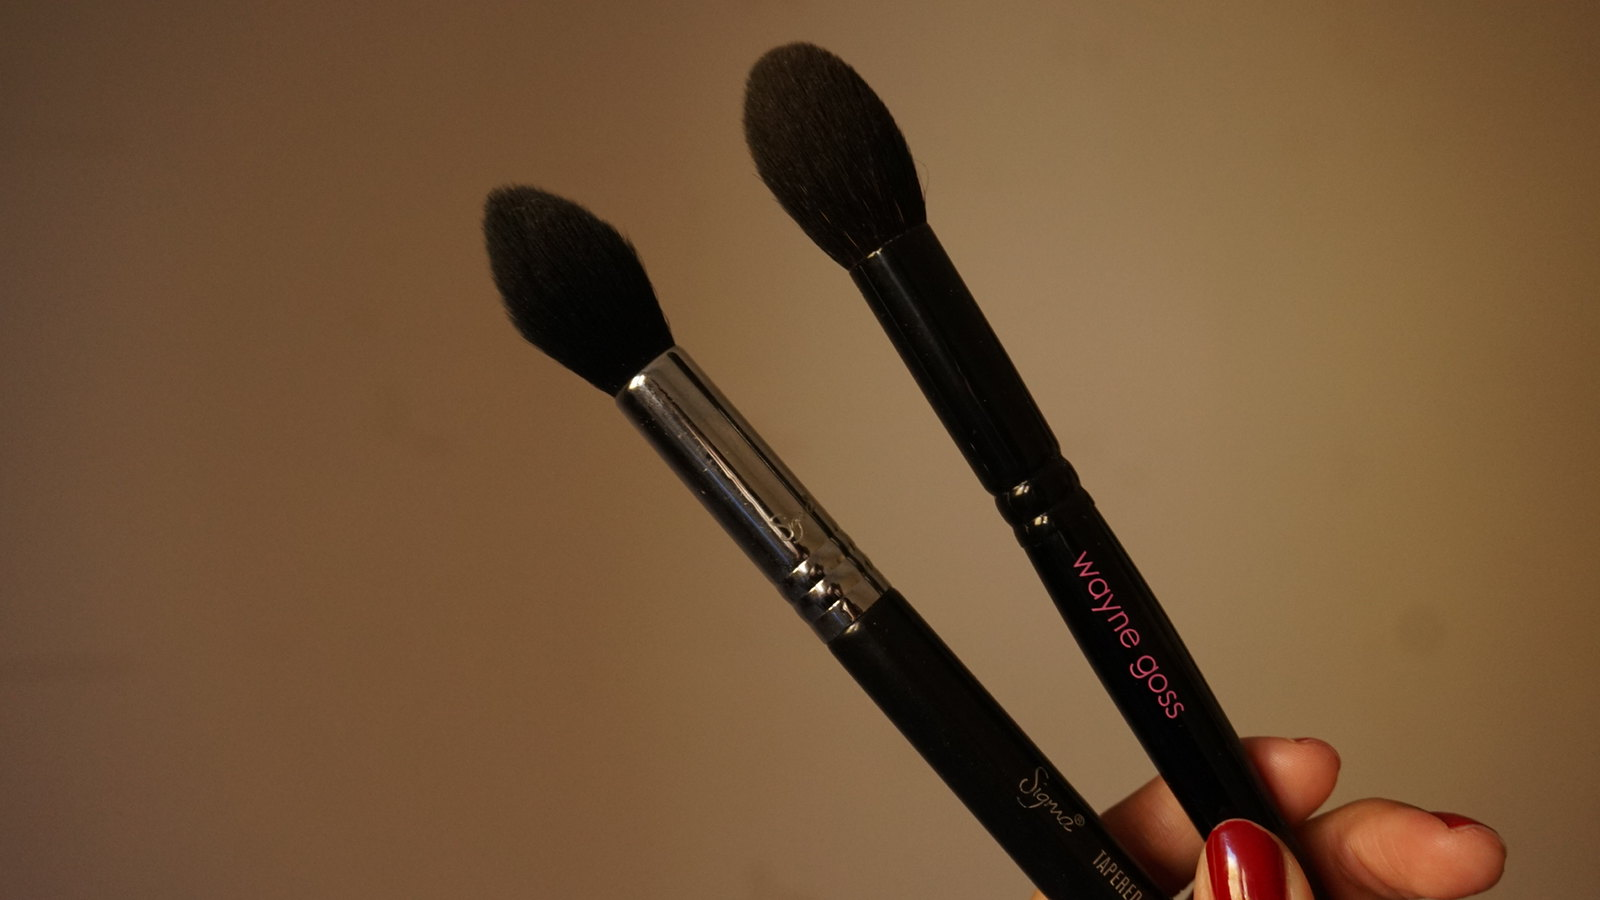 sigma f35 vs wayne goss brush 02 review girlandvanity.com